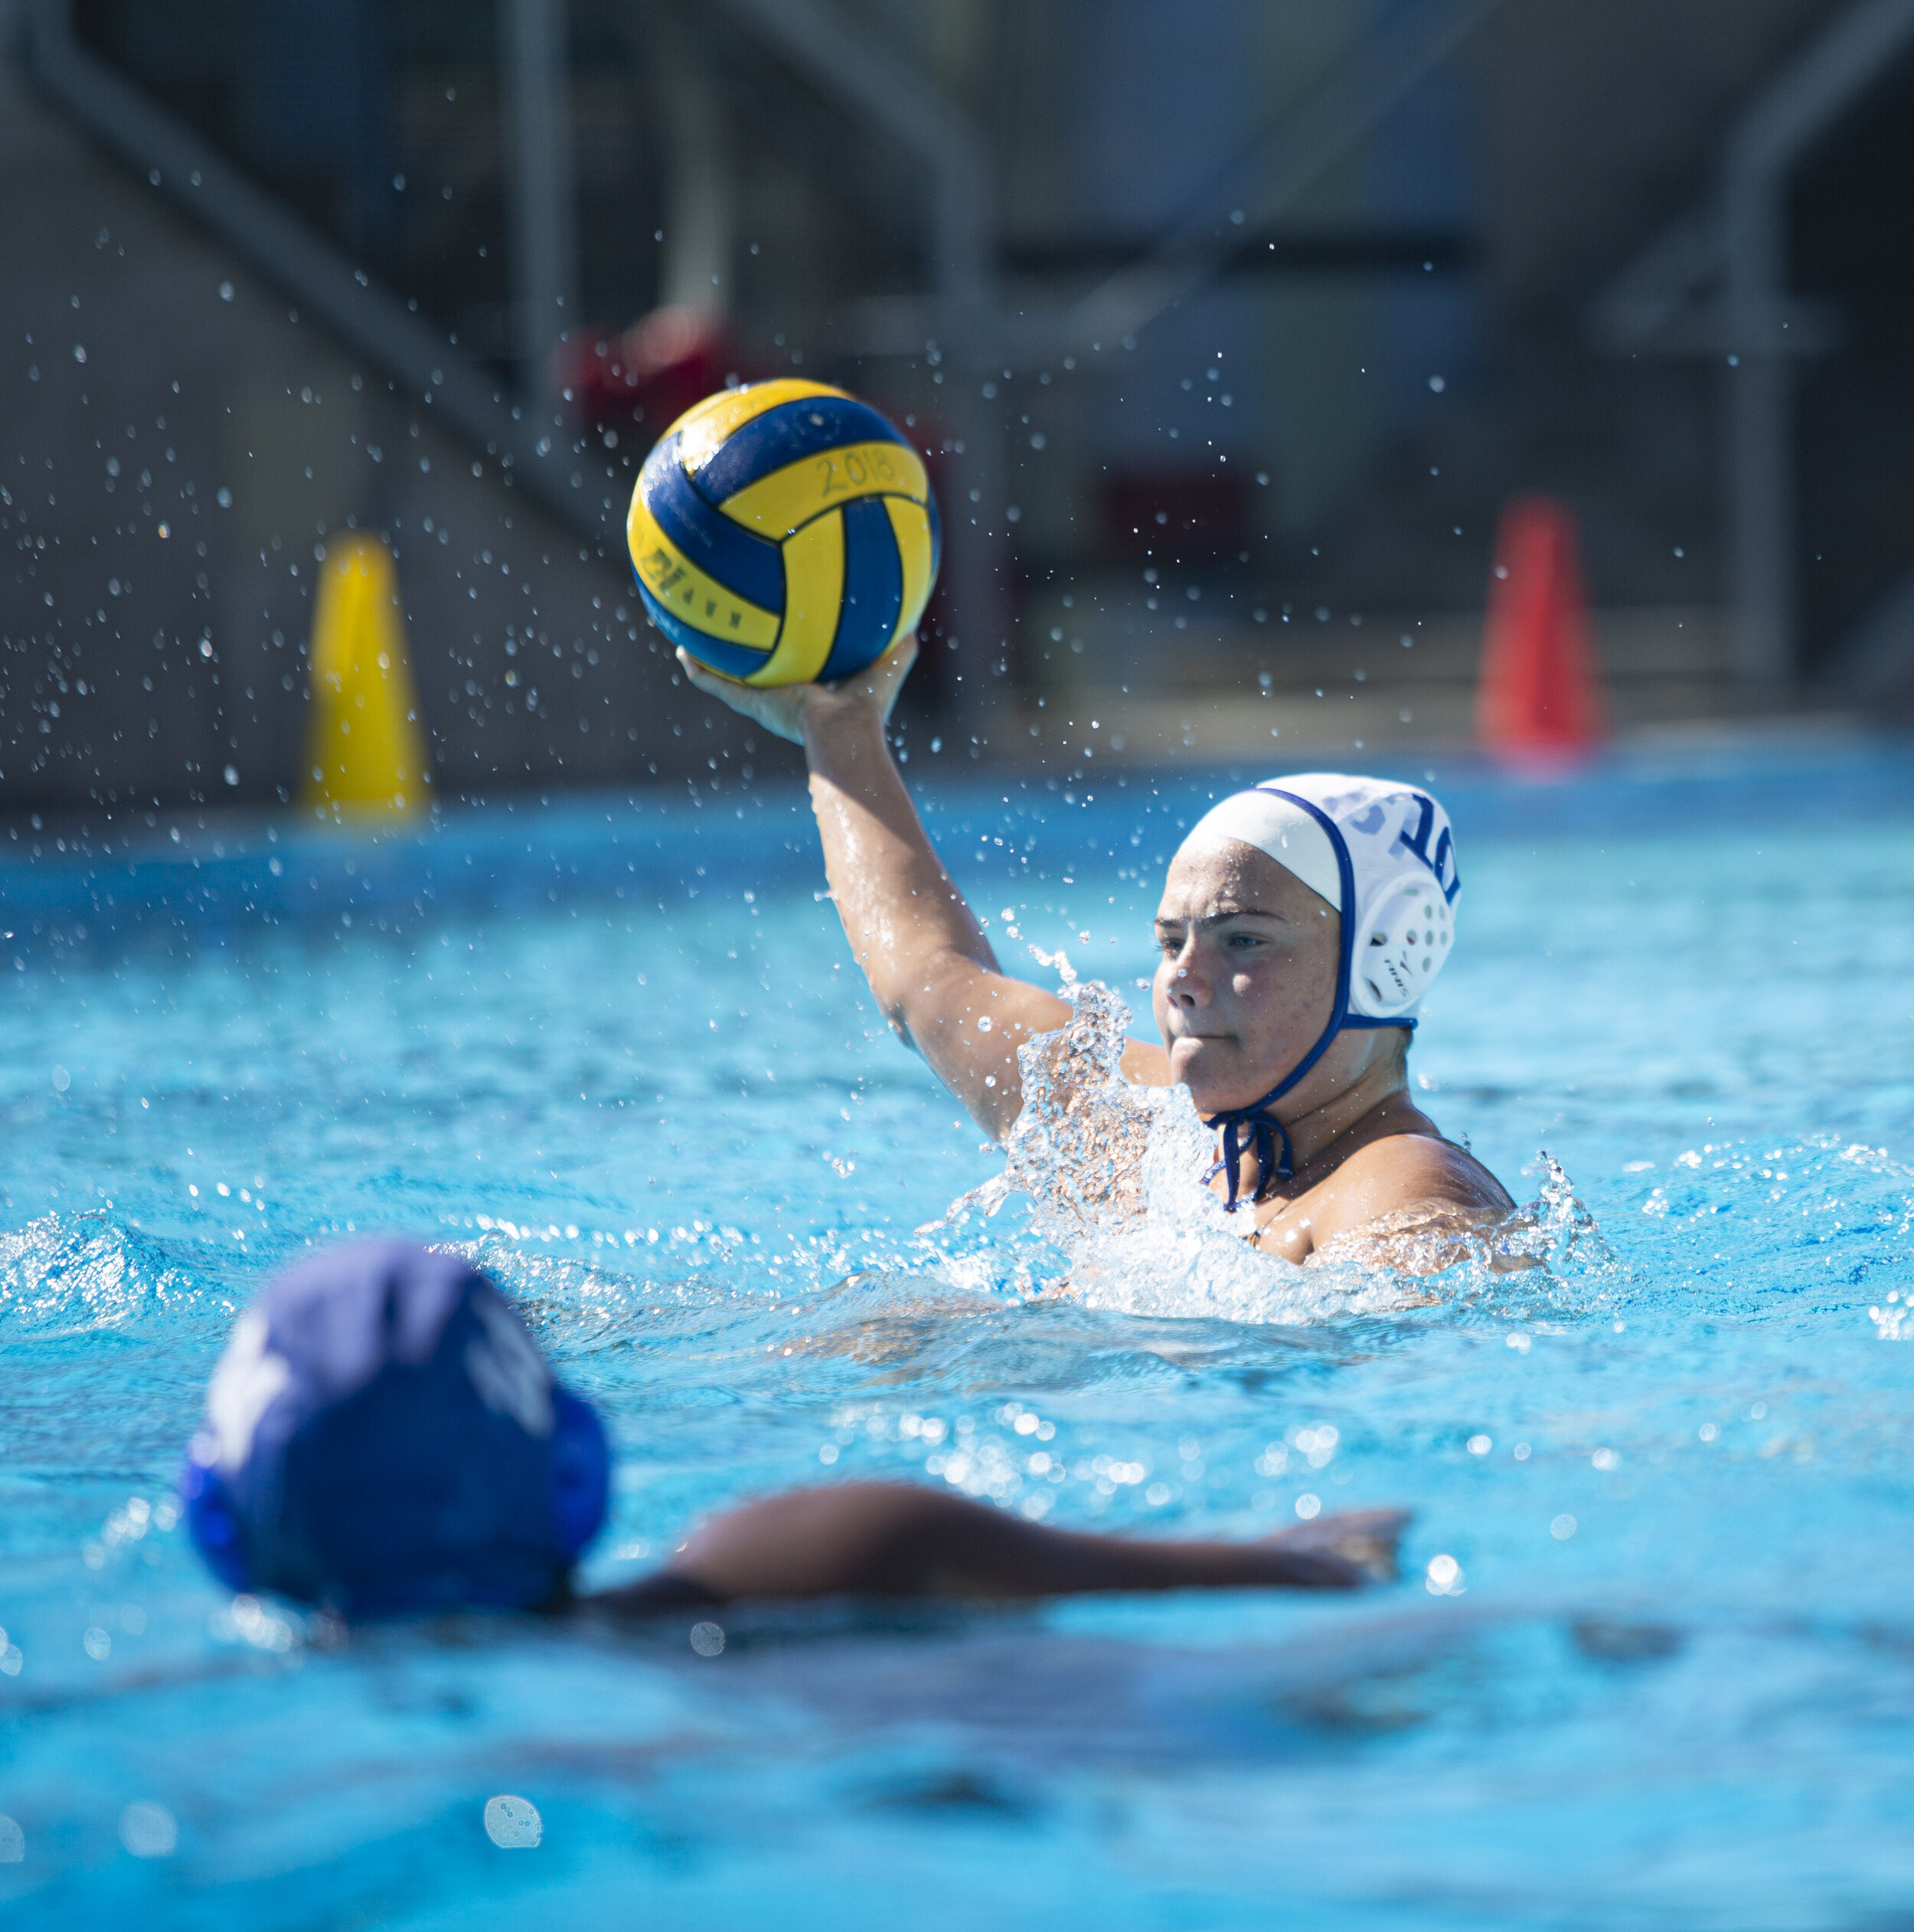 Grace Knight, from Santa Monica College (SMC) women's water polo team, during their practice on Monday, October 6, in Santa Monica, Calif.  (Yasamin Jtehrani / The Corsair)